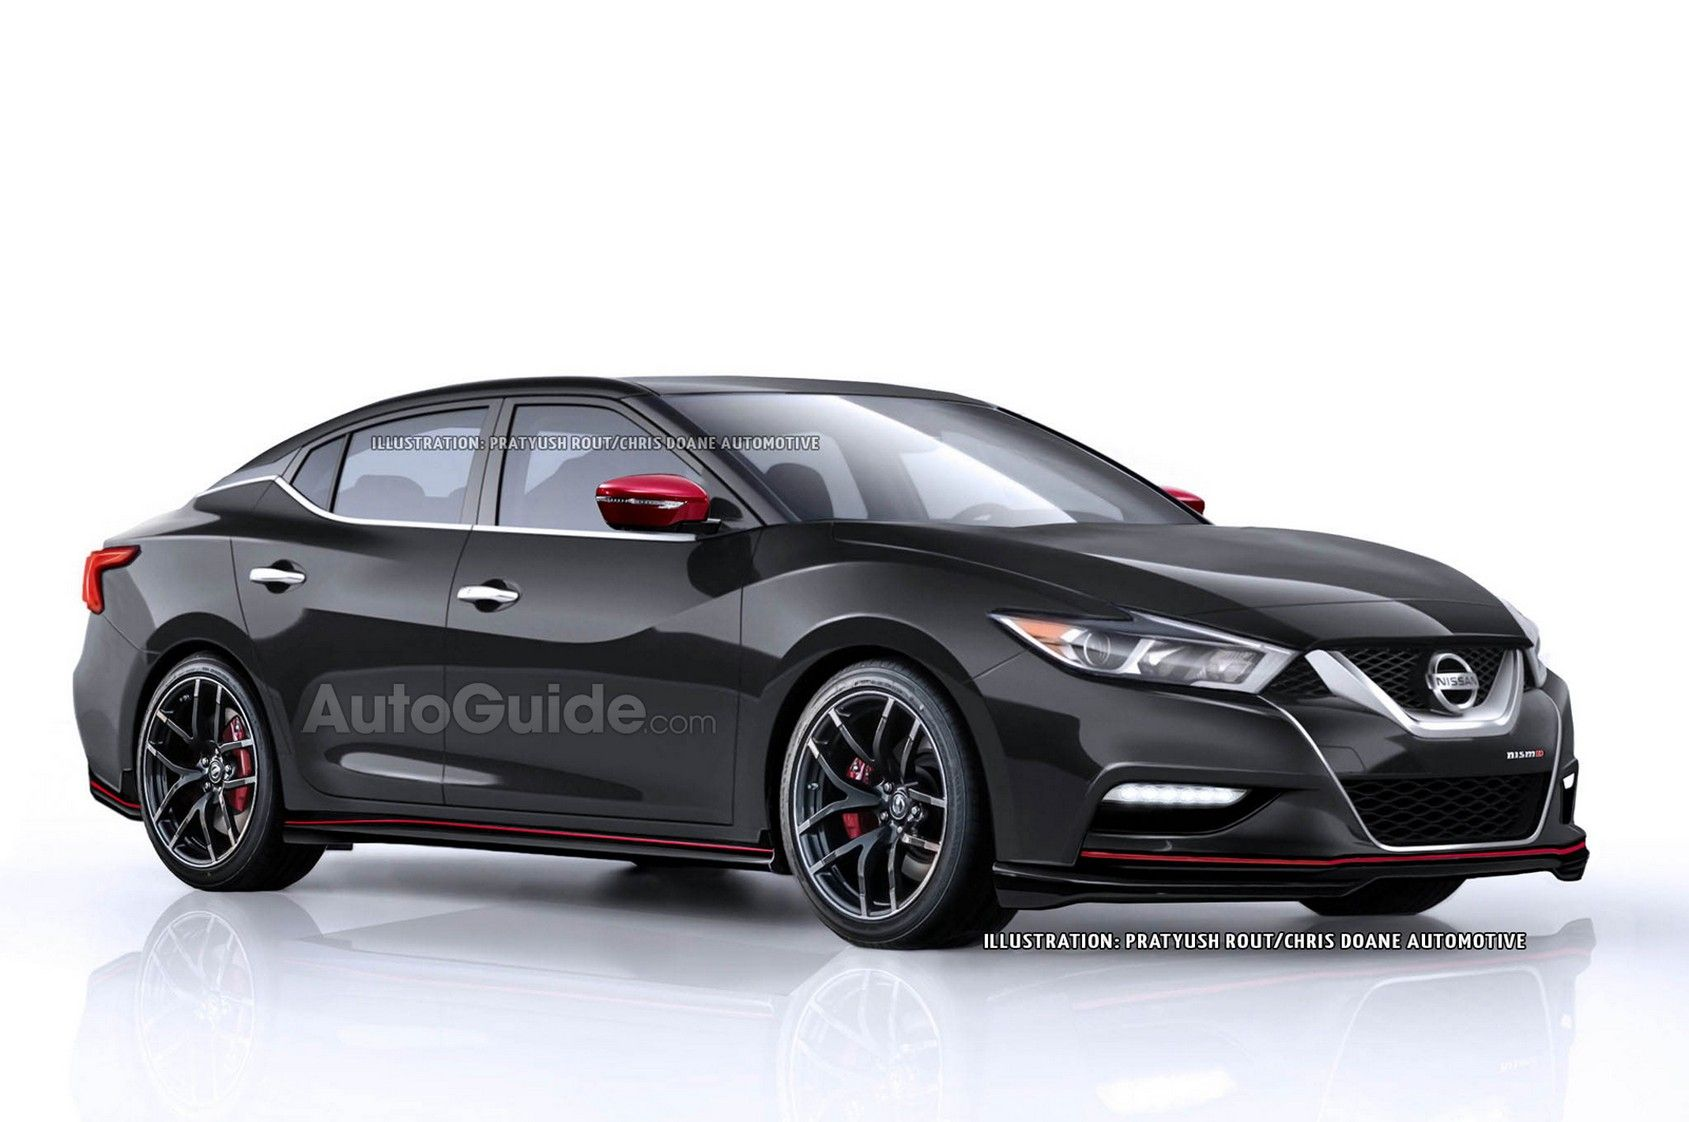 2020 nissan maxima nismo price concept 2020 nissan maxima is a 2020 nissan maxima nismo price concept 2020 nissan maxima is a sport cars vanachro Images